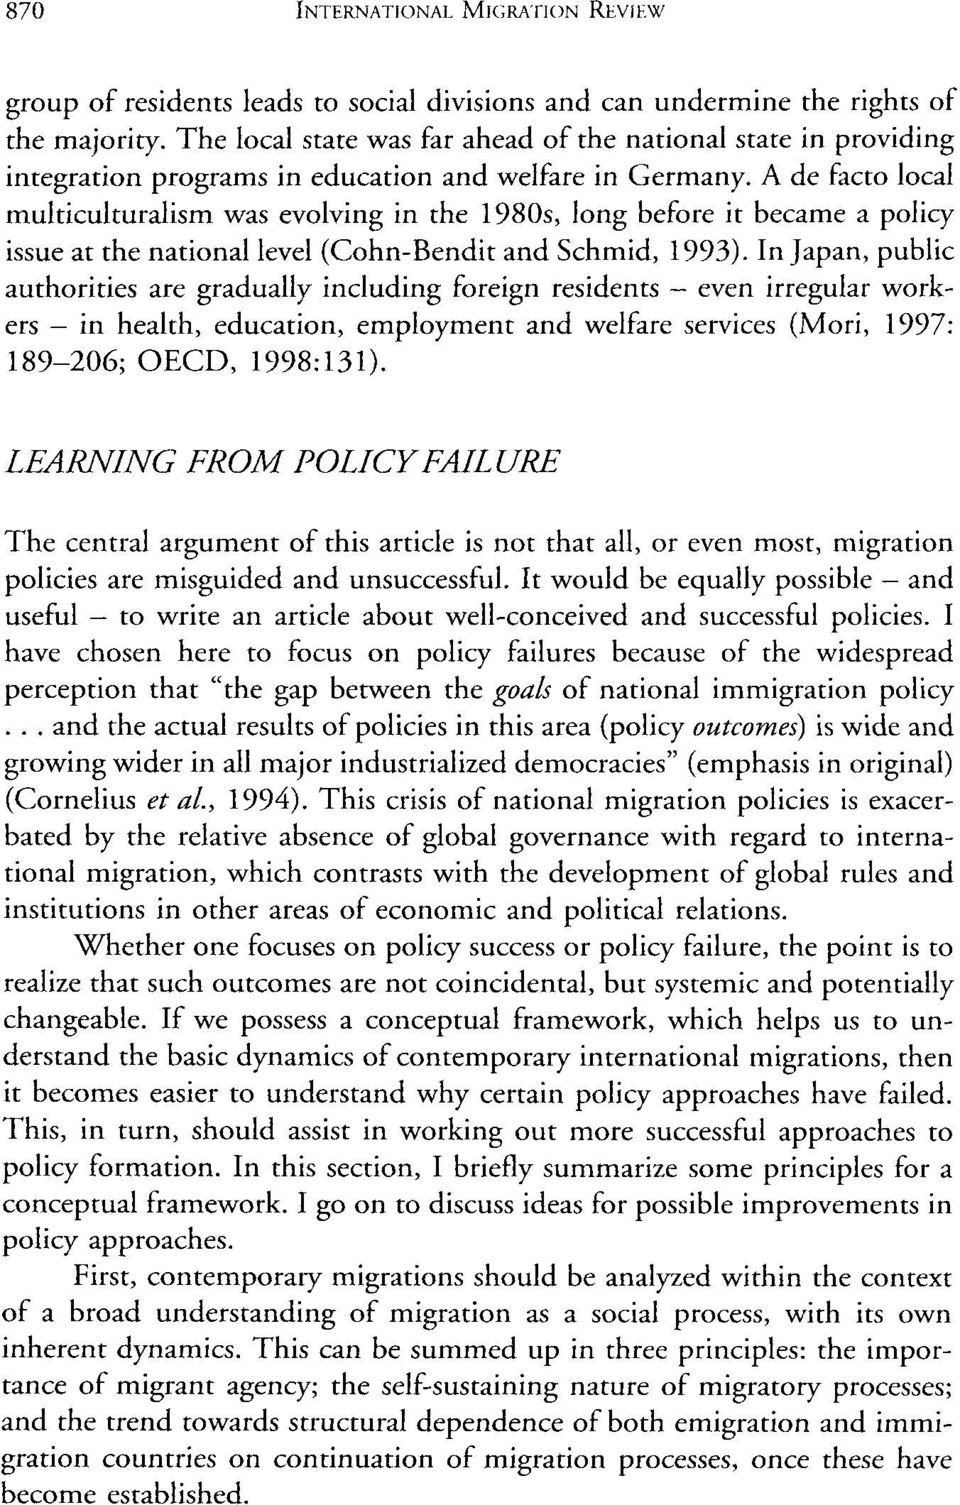 A de fac local multiculturalism was evolving in 1980s, long before it became a policy issue at national level (CohnBendit Schmid, 1993).